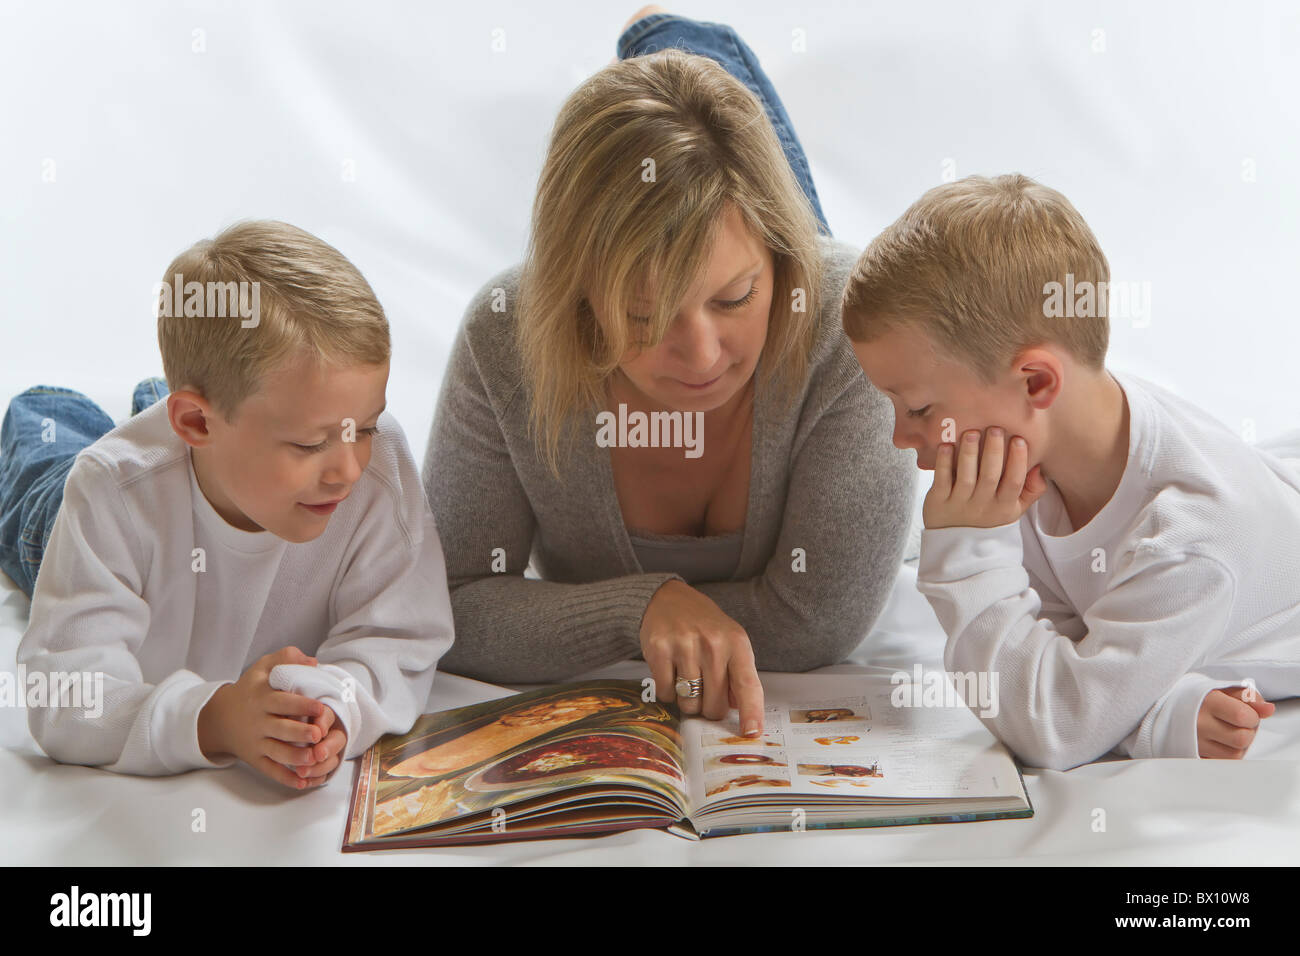 Identical twin boys doing homework with their Mom - Stock Image